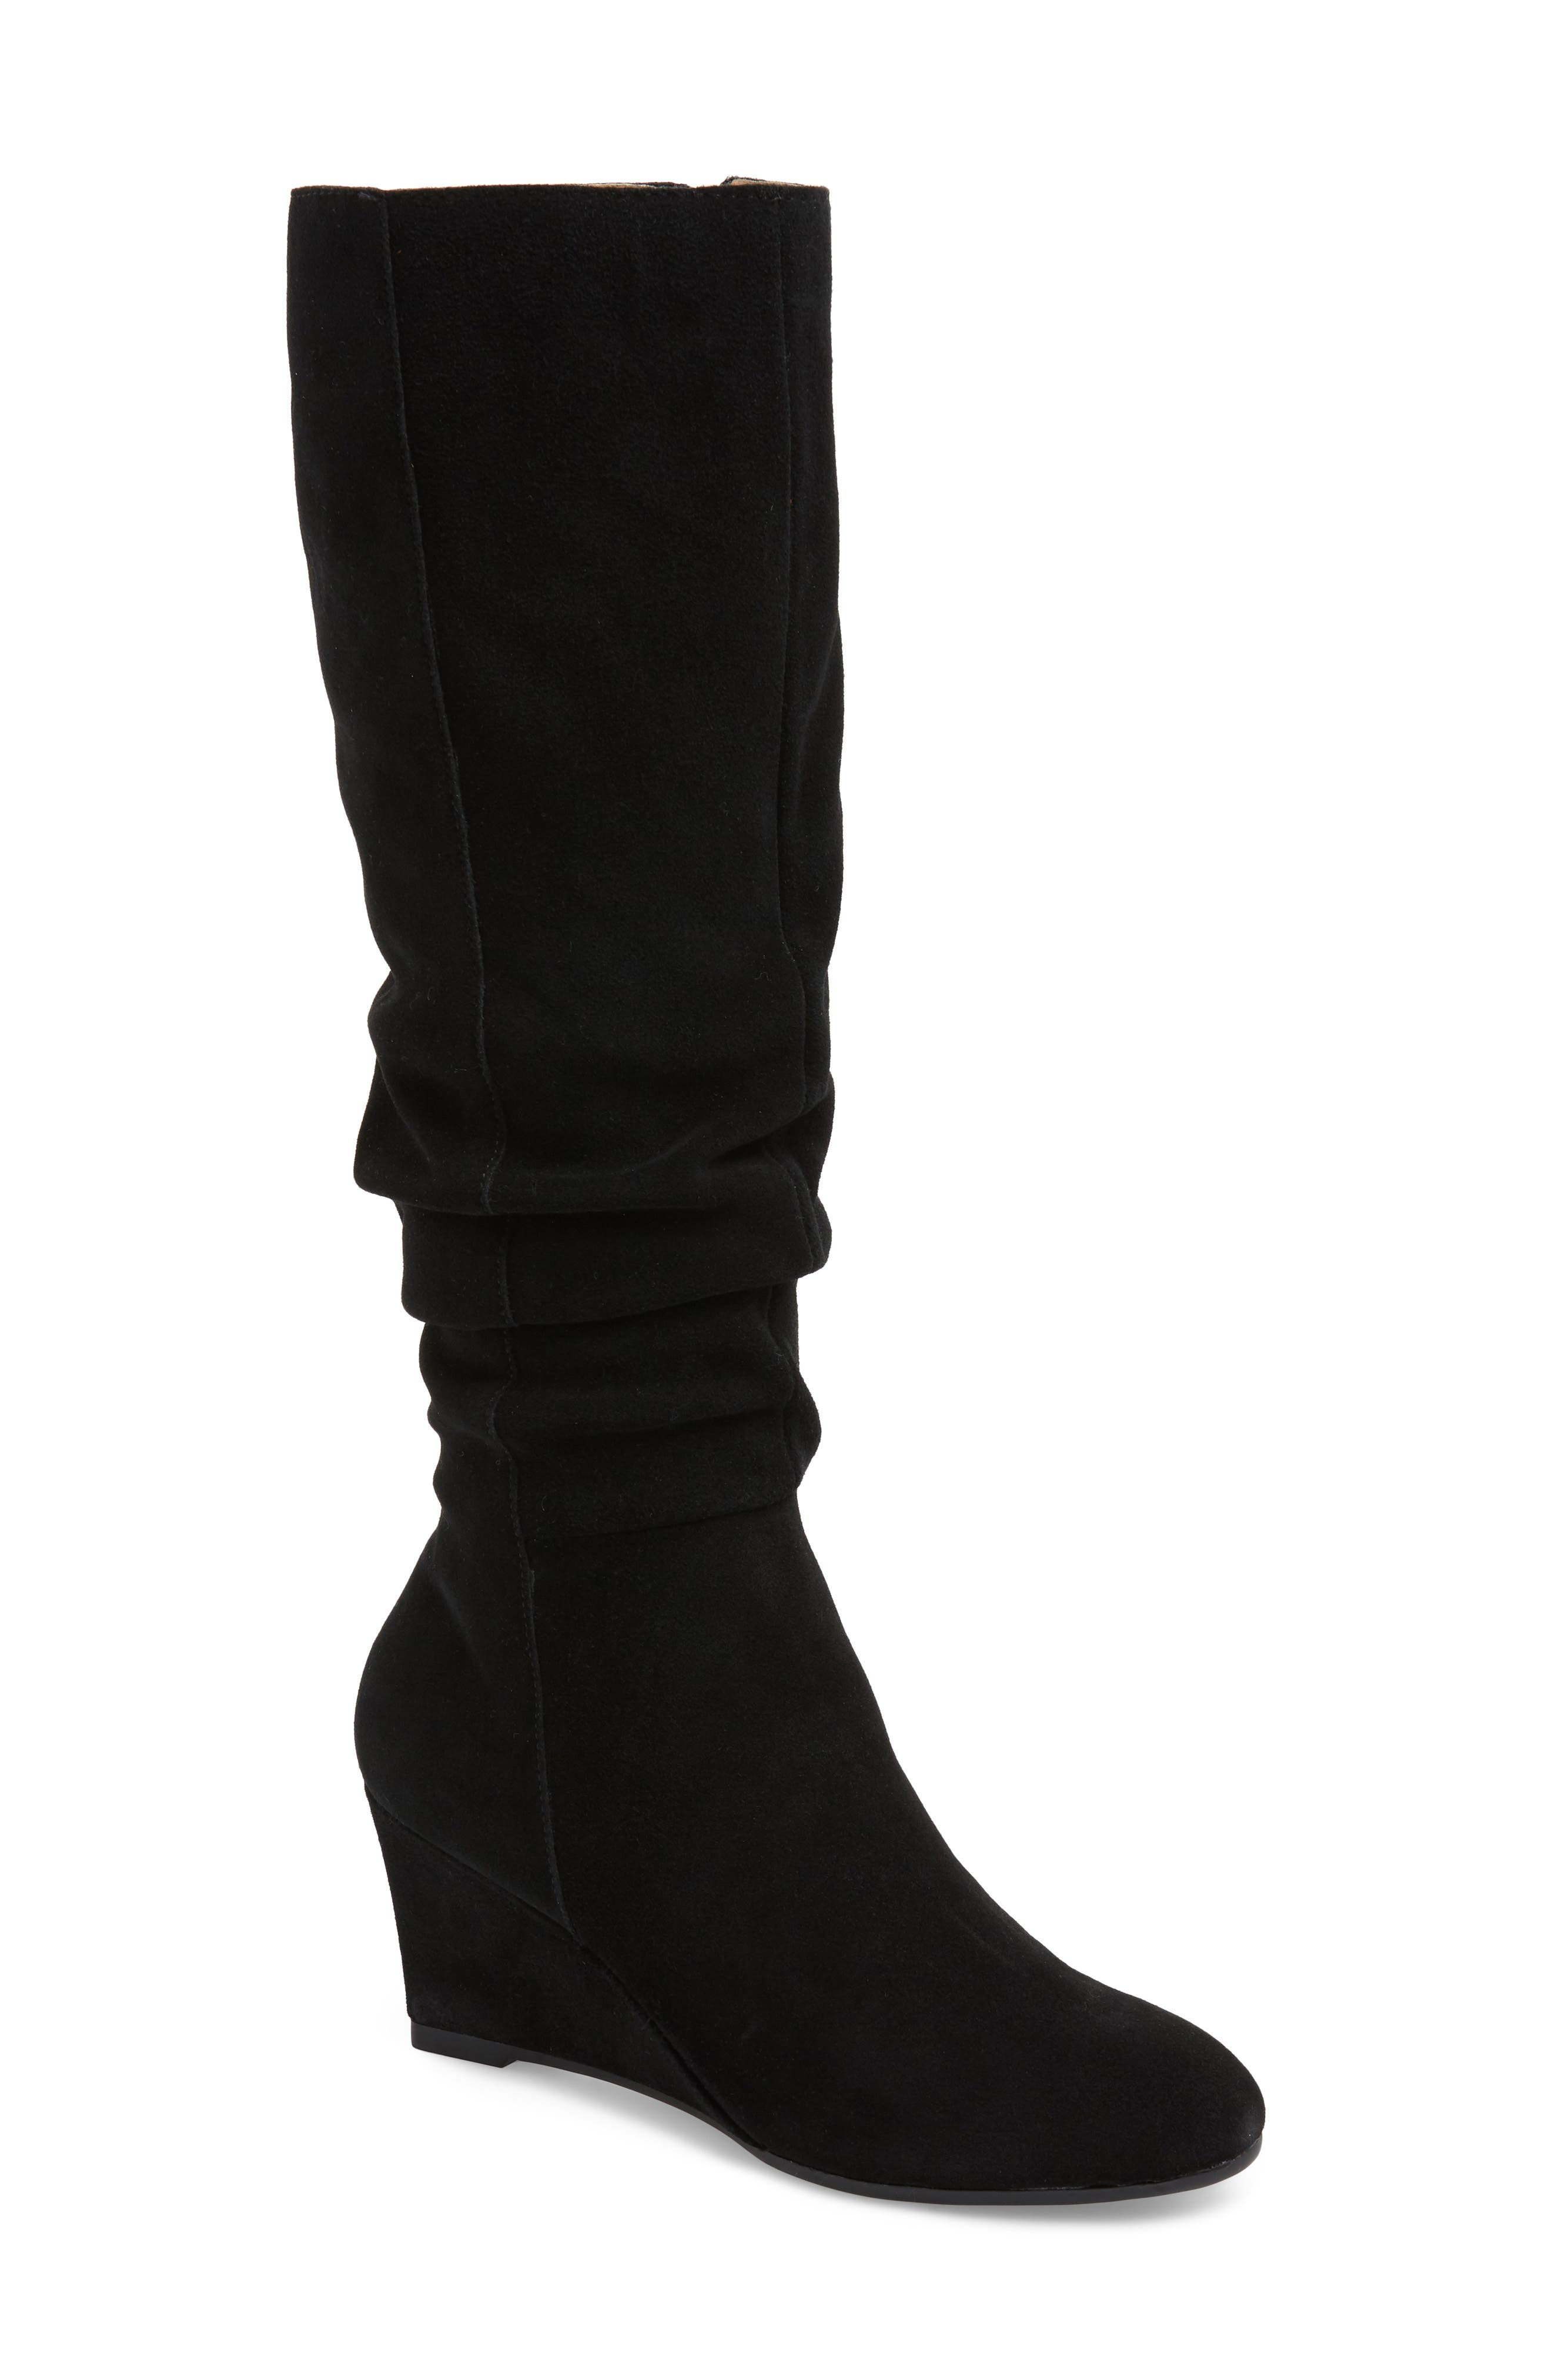 Bettye Muller Concepts Carole Knee High Boot- Black